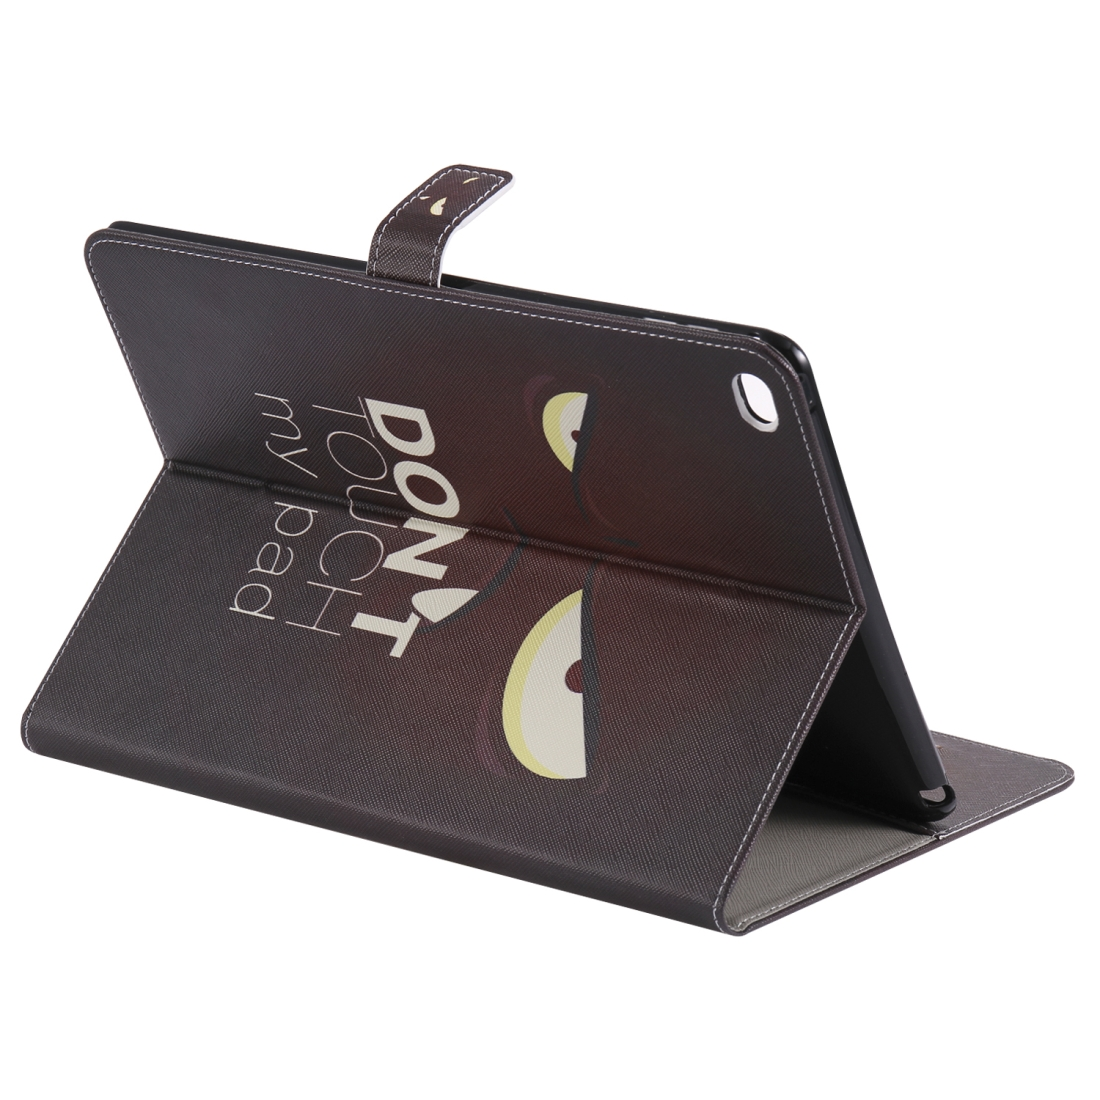 iPad 5th Generation Case Fits iPad 5 & 6, Leather With A Slim Profile & Auto Sleep (Eye)